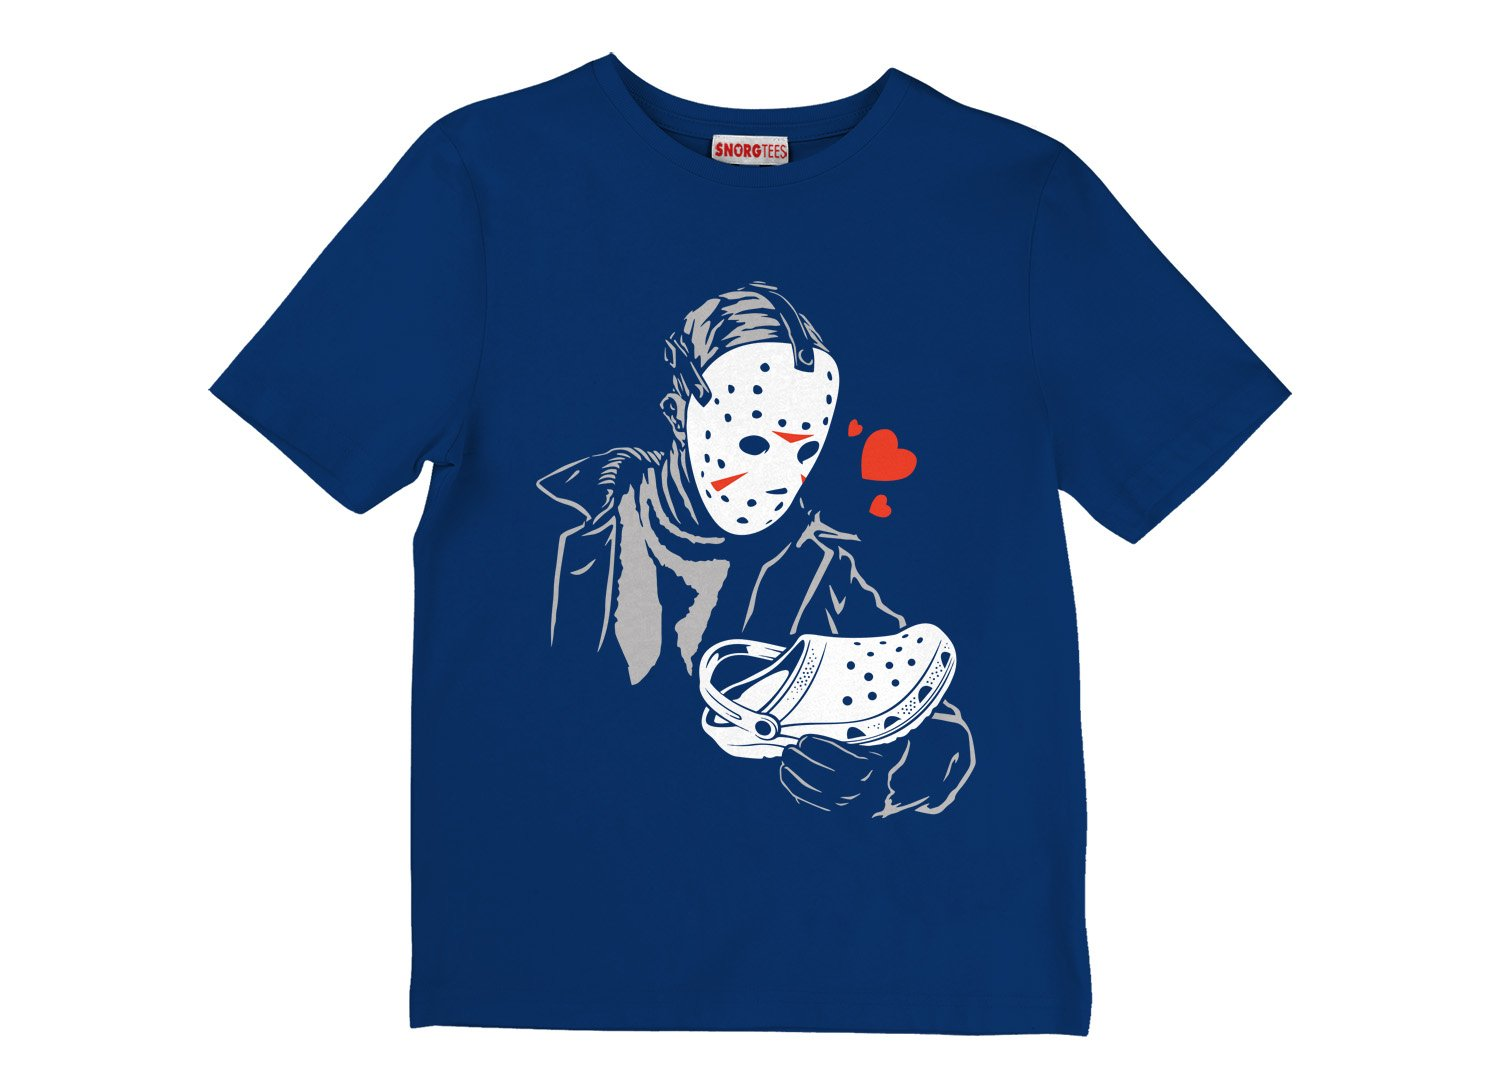 Jason Loves Crocs on Kids T-Shirt